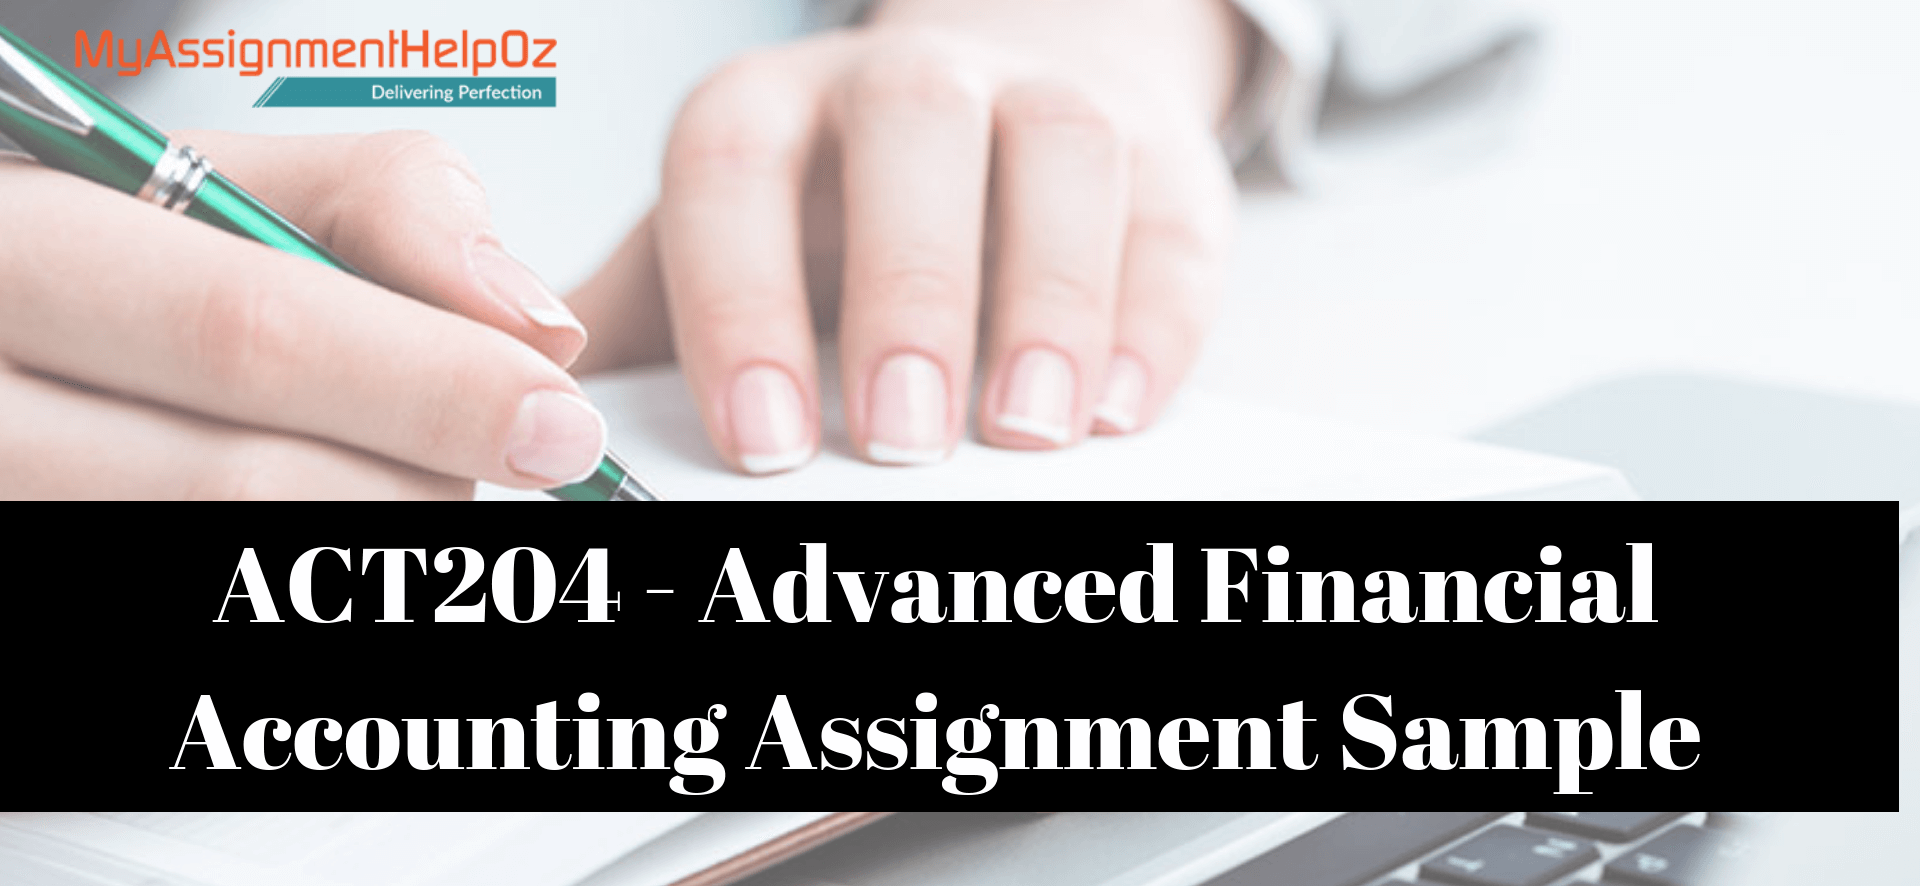 ACT204 Advanced Financial Accounting Assignment Sample